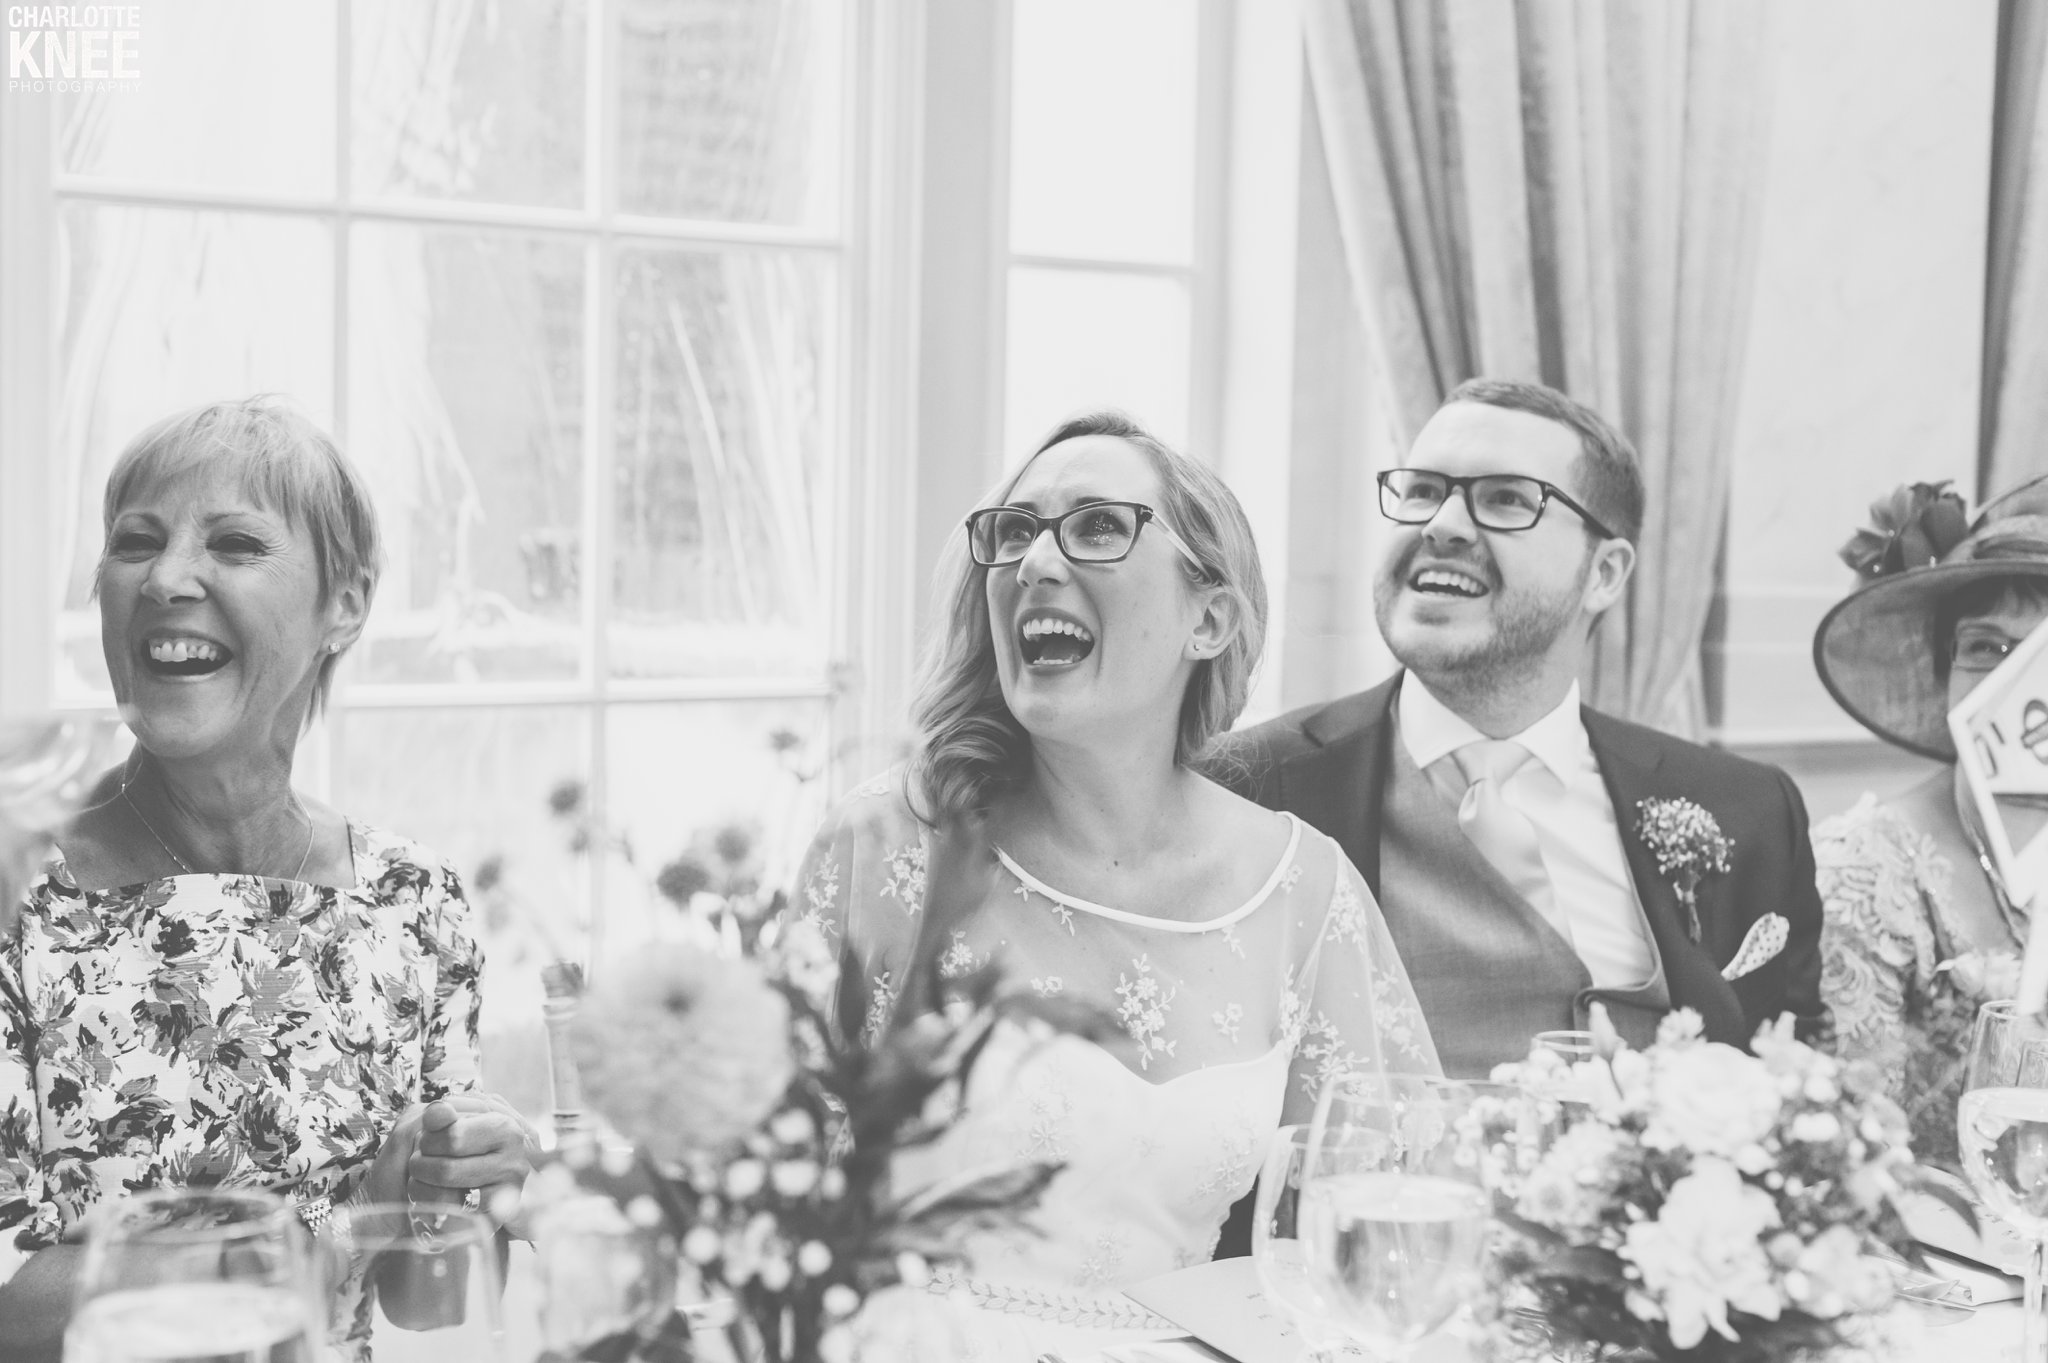 Saddlers Hall London Wedding Photography Copyright Charlotte Knee Photography_0153.jpg